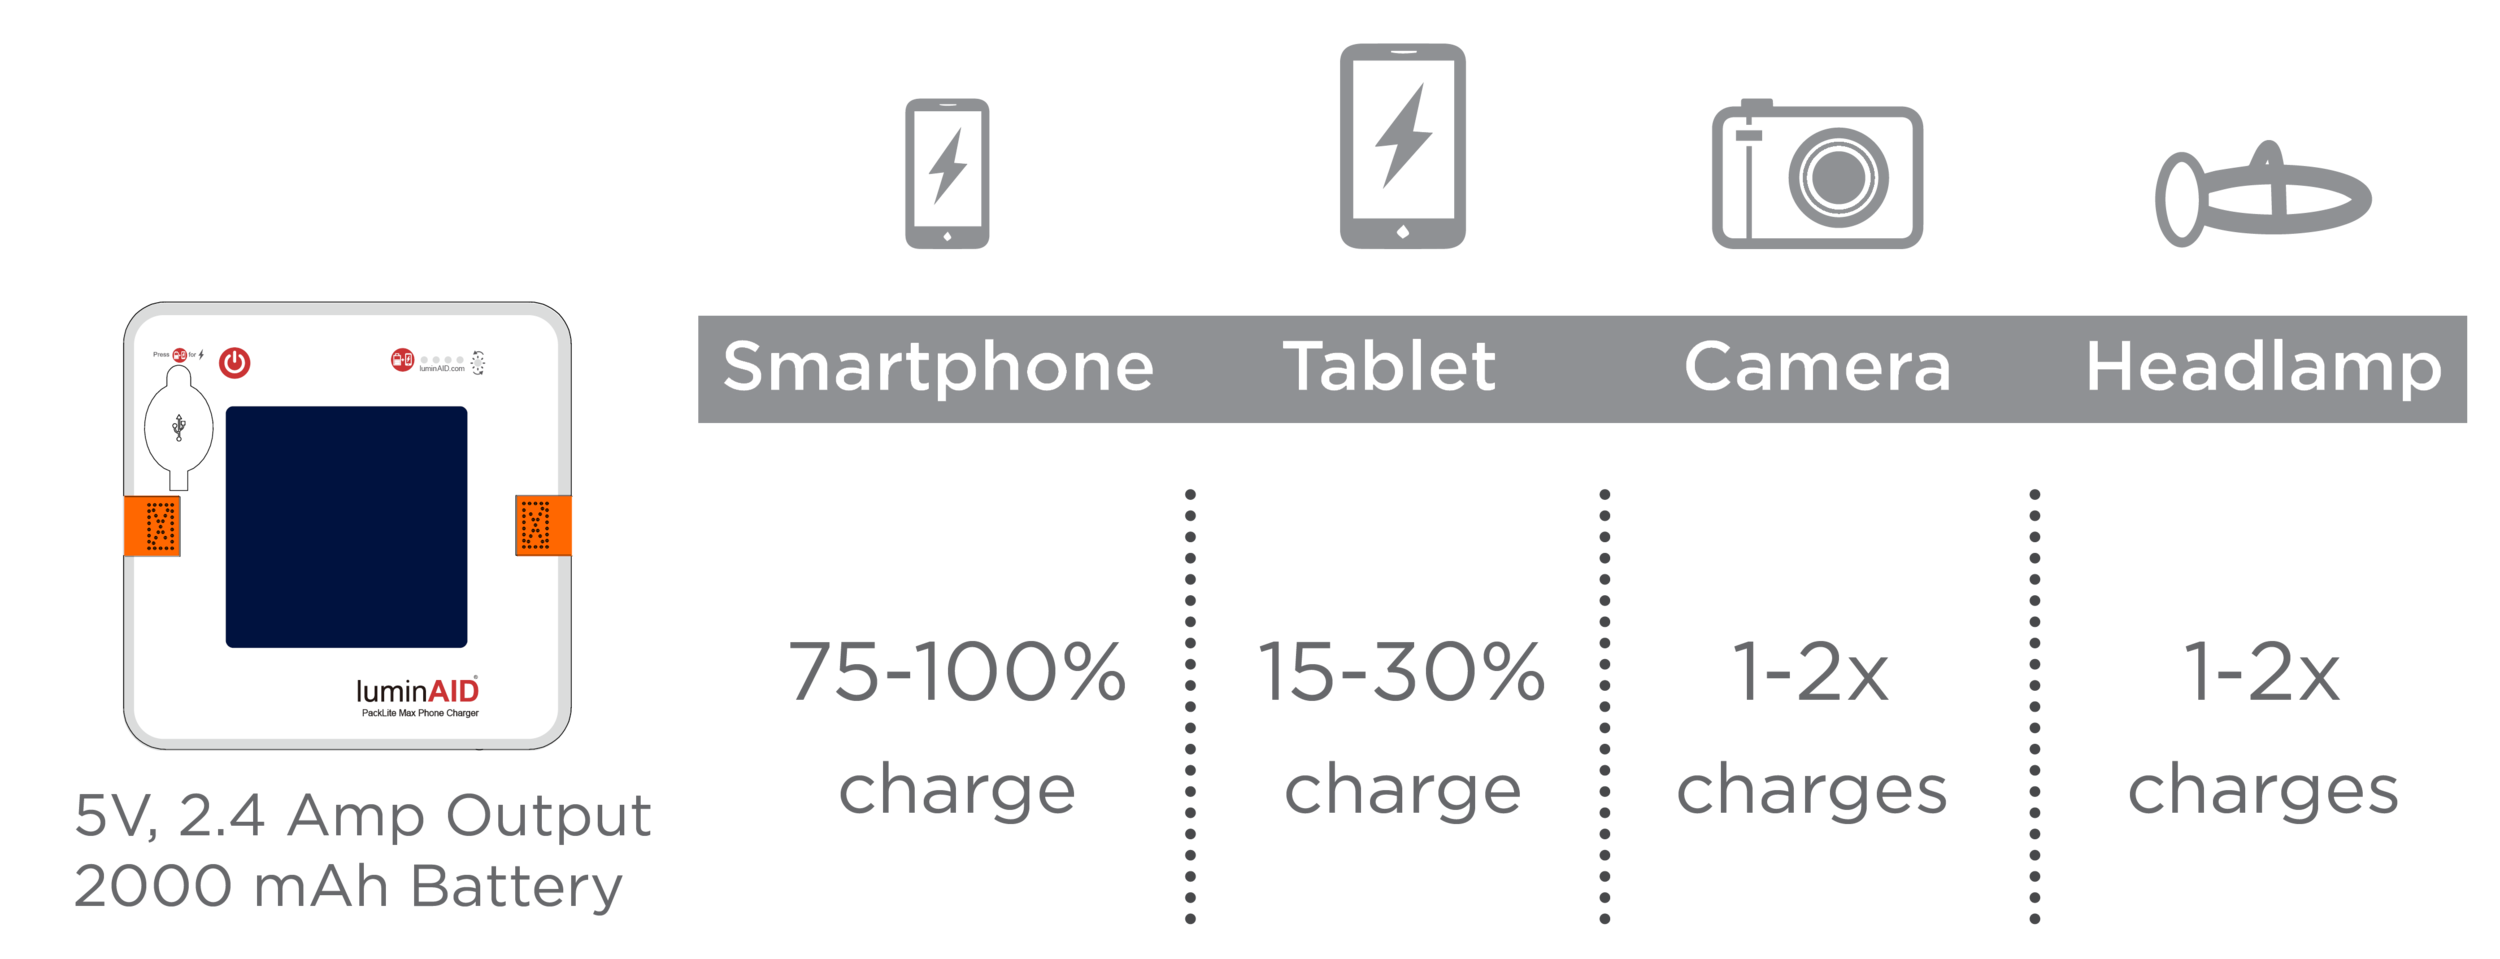 PLMXC_Device_Charge_Times.png